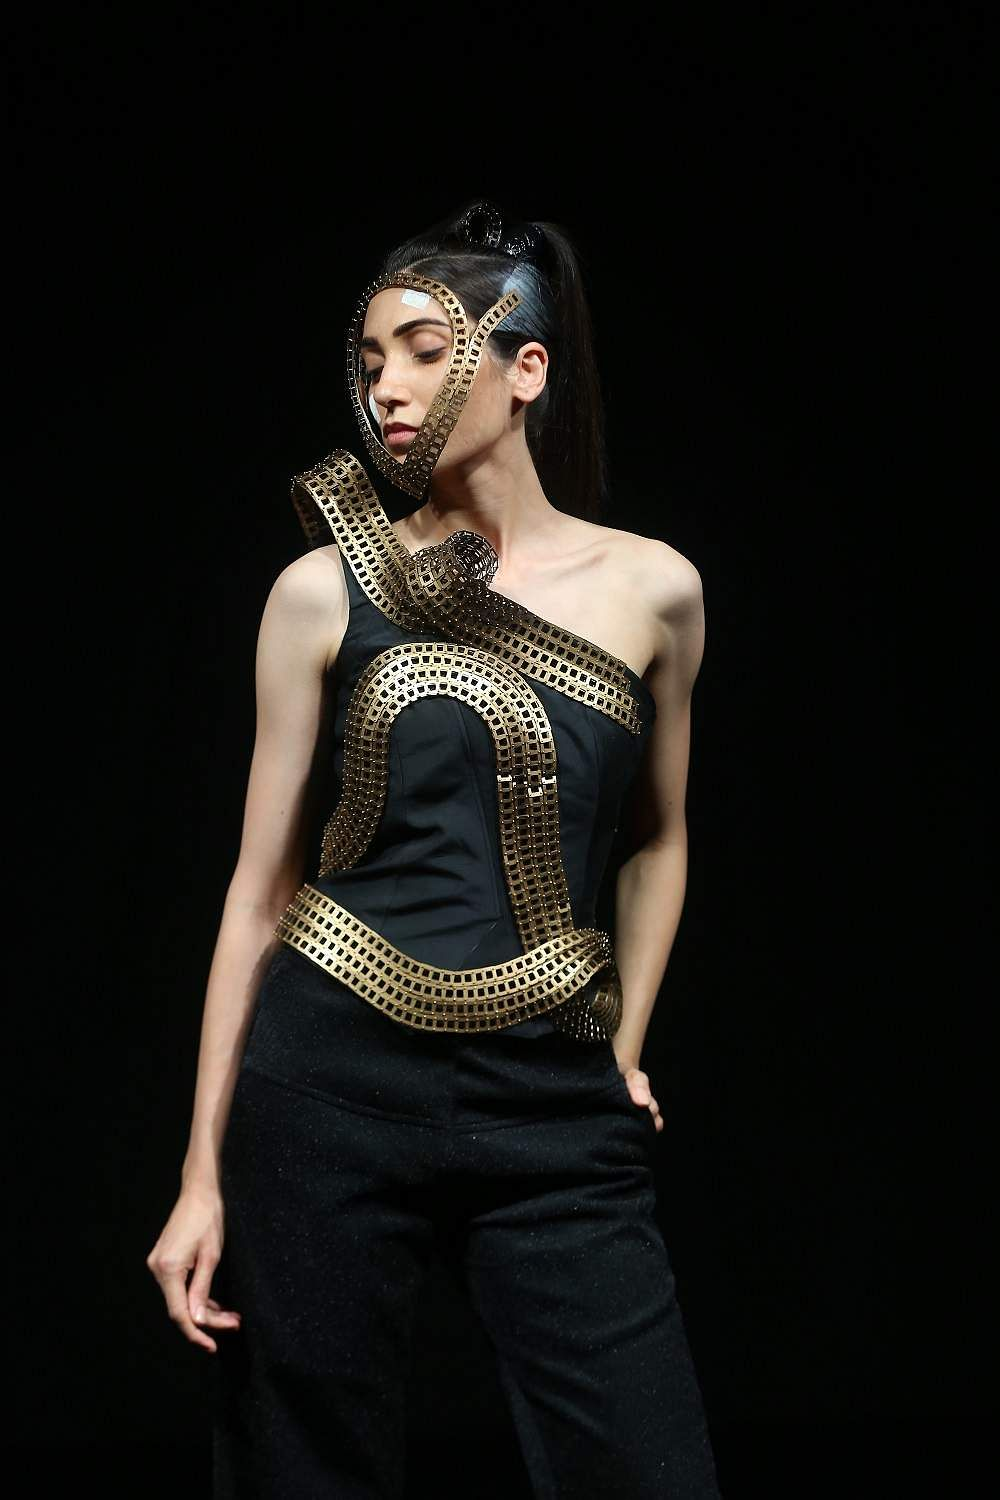 From Nitin Bal Chauhan's collection